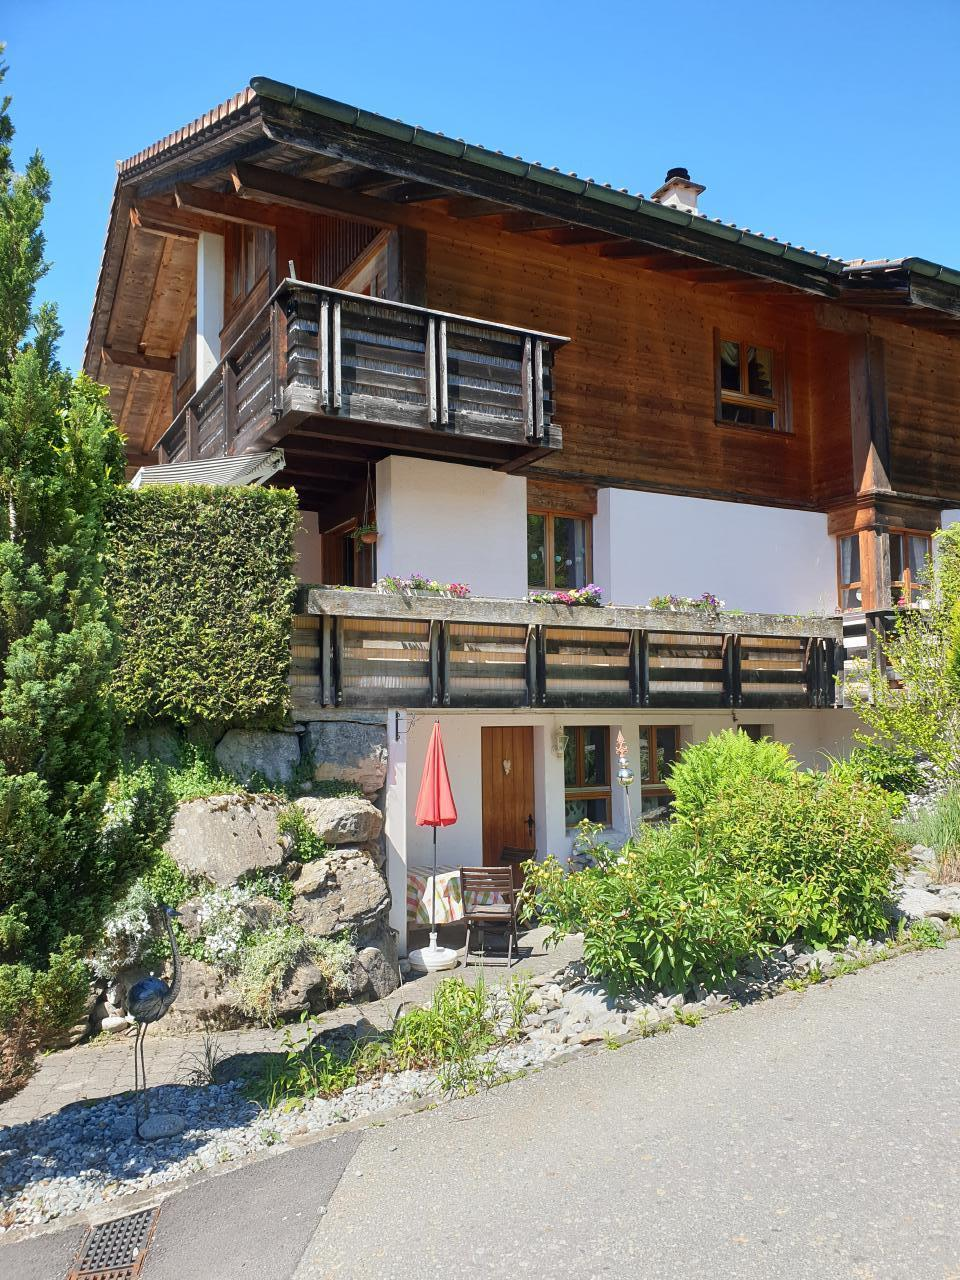 Appartement de vacances Studio in Schwanden am Brienzersee (1073281), Schwanden b. Brienz, Lac de Thoune - Lac de Brienz, Oberland bernois, Suisse, image 1